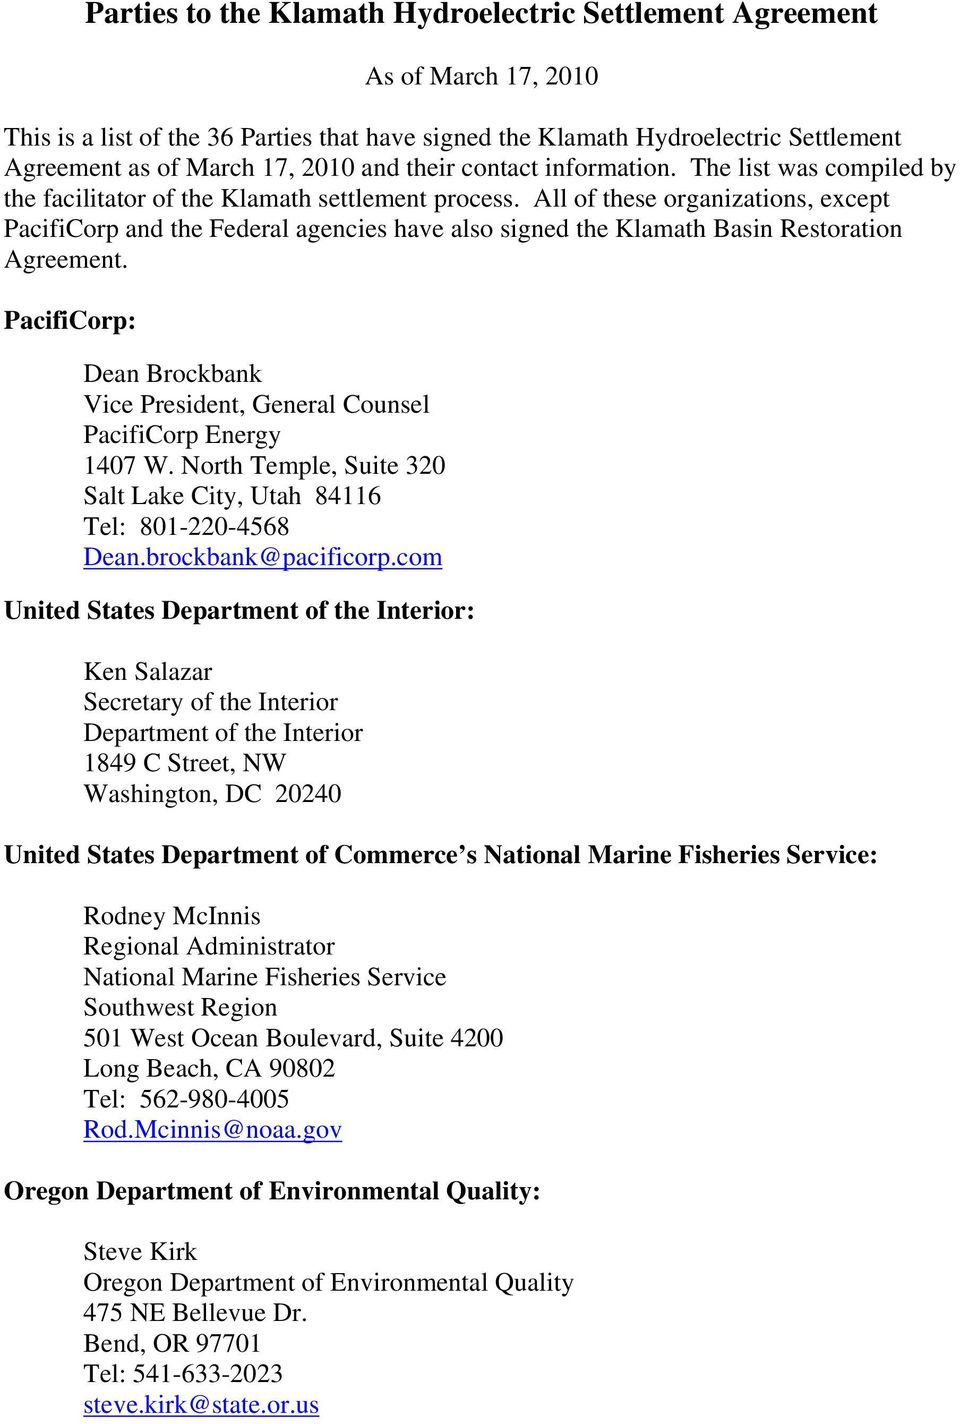 Parties To The Klamath Hydroelectric Settlement Agreement Pdf